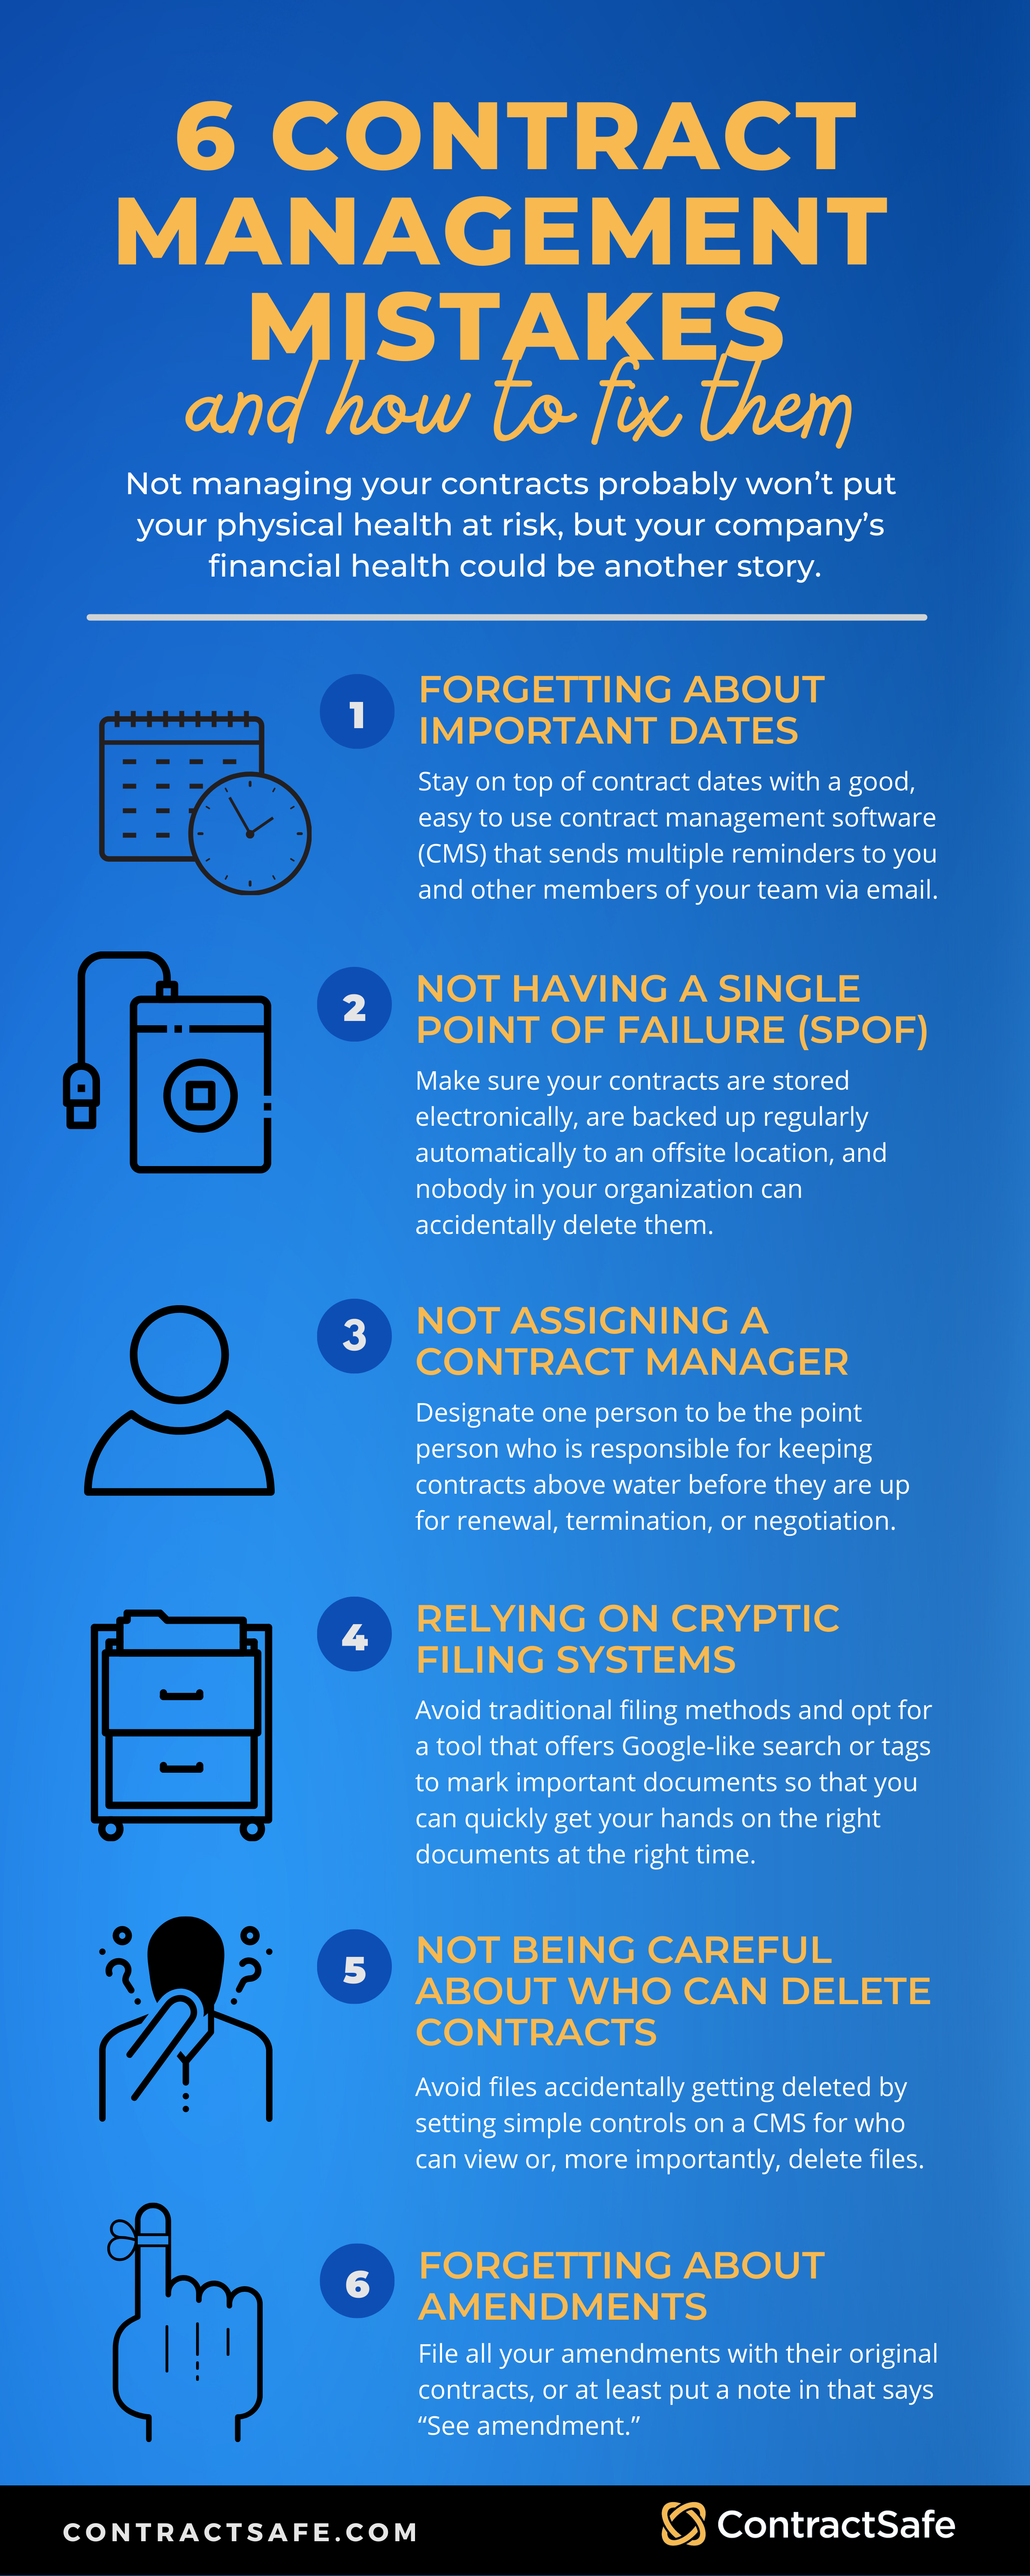 6 Contract Management Mistakes Infographic